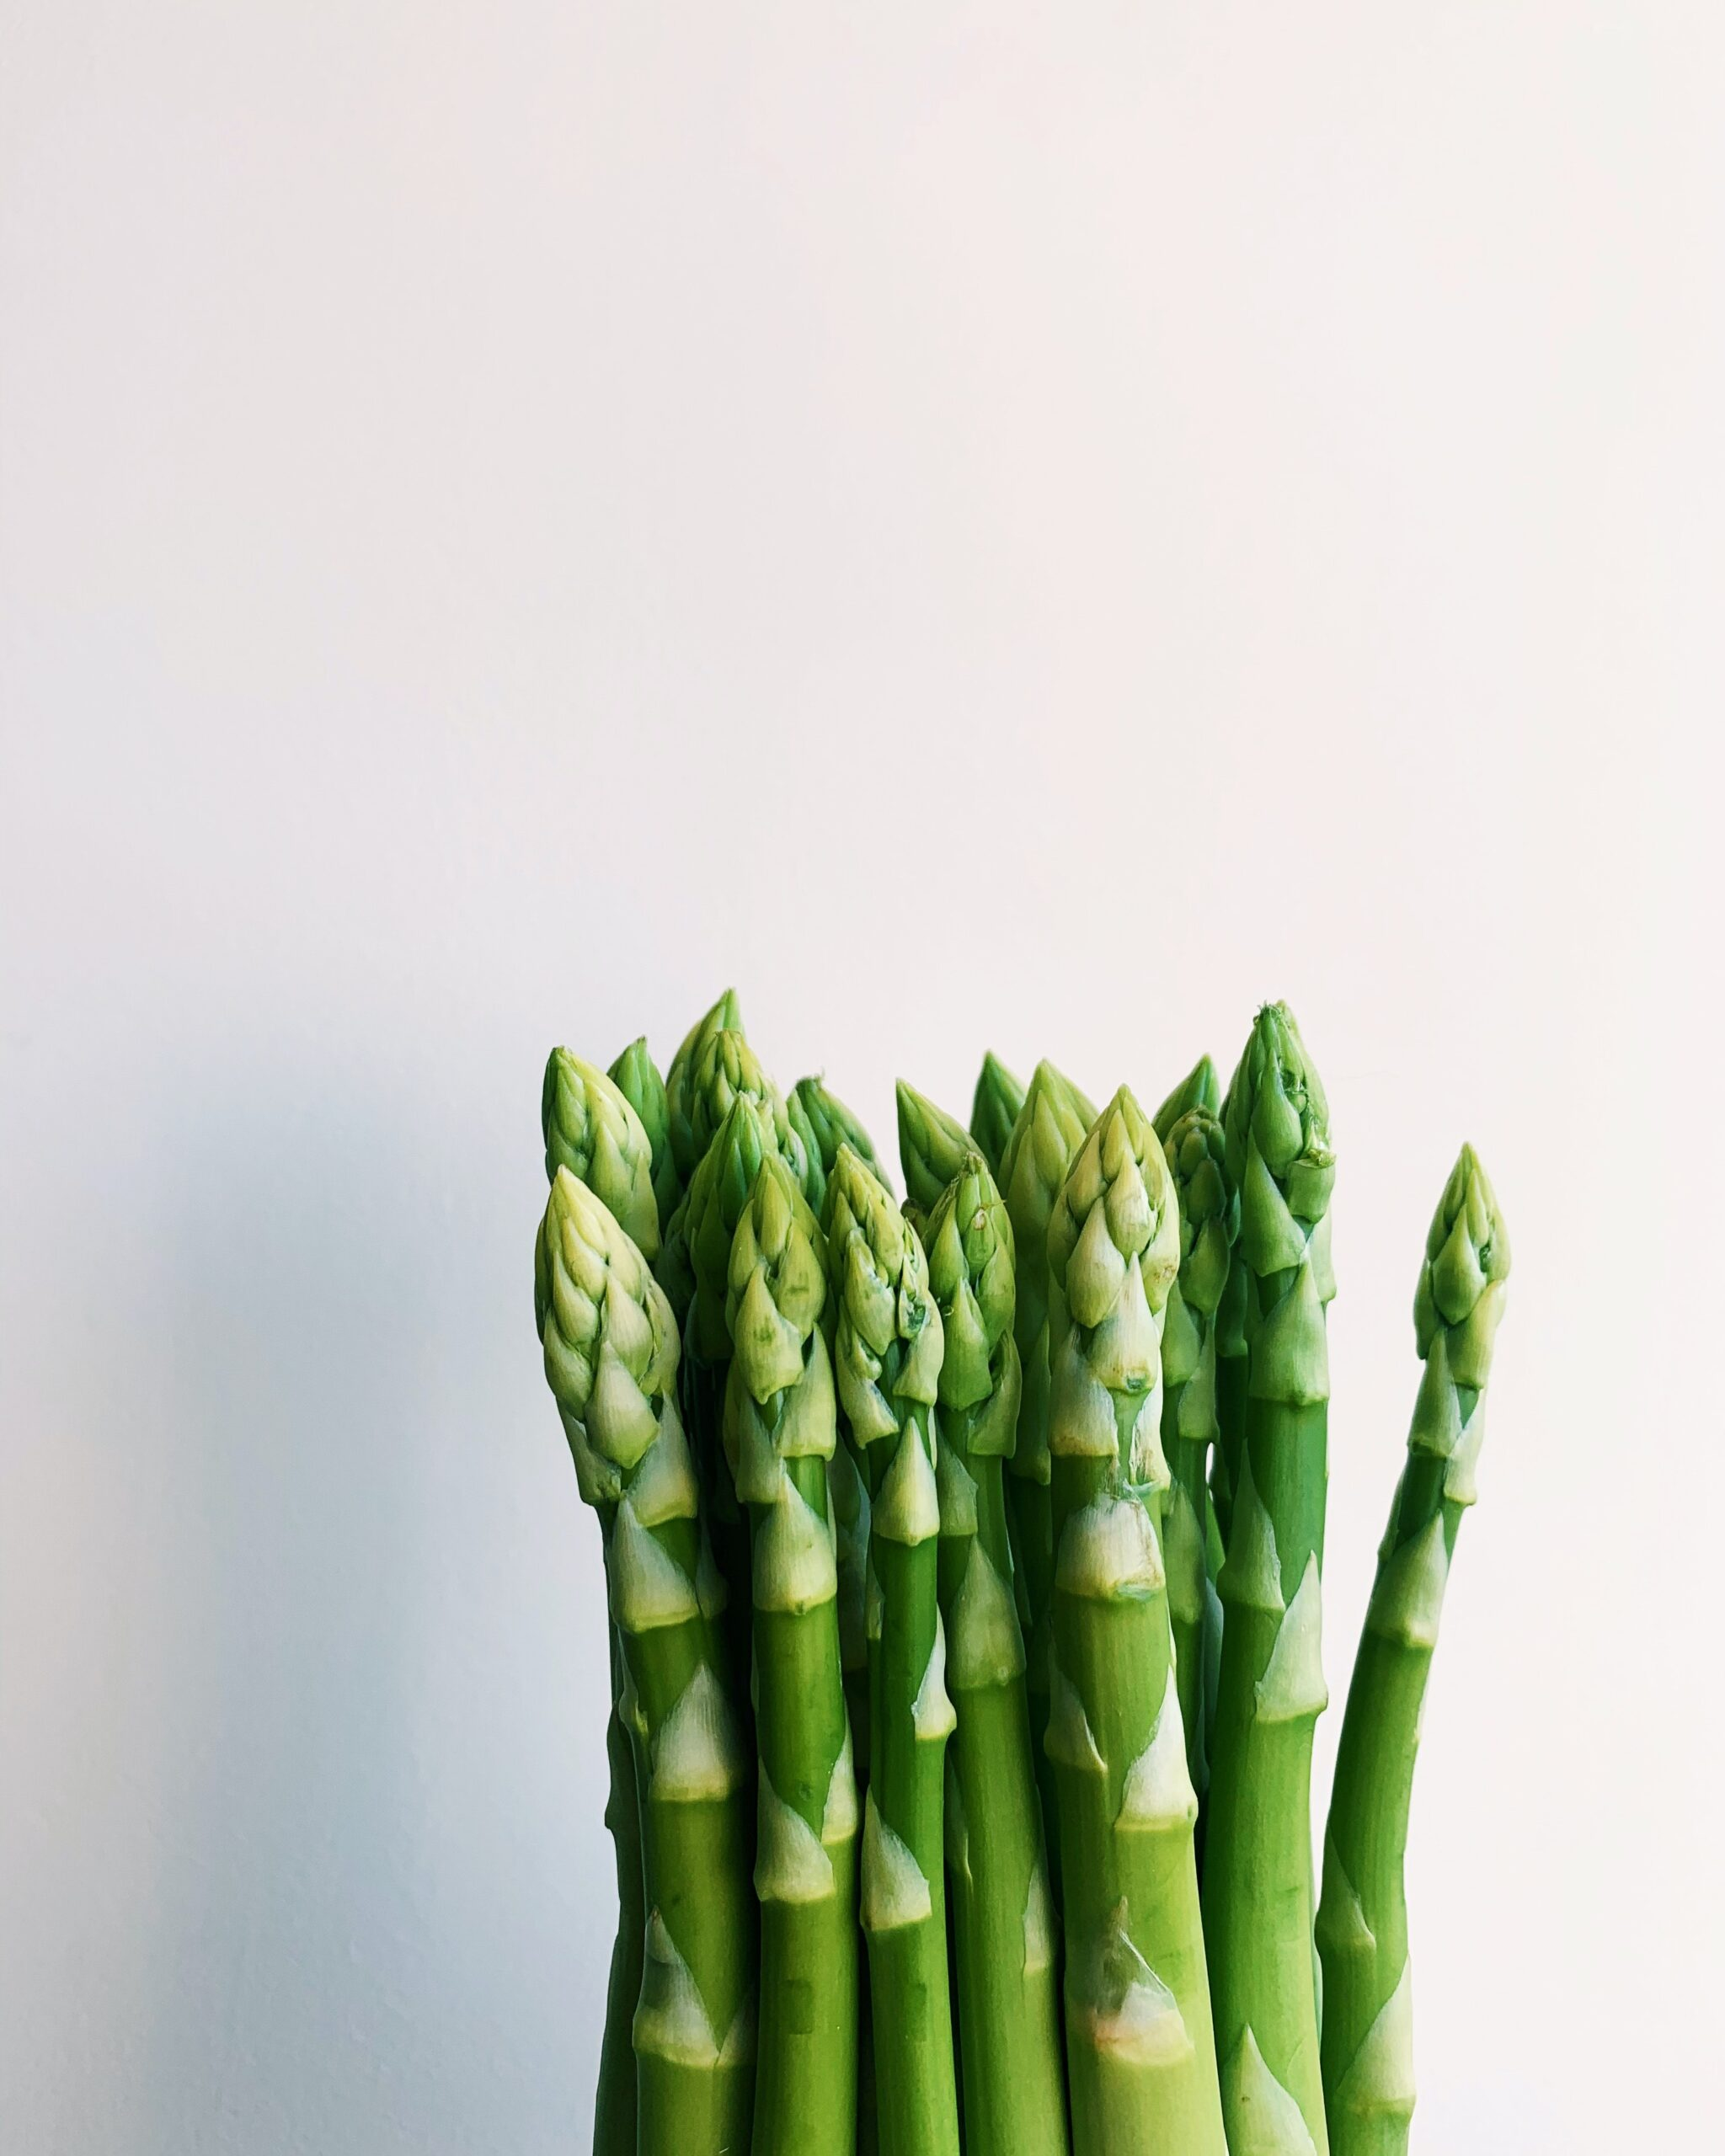 A bunch of asparagus tips